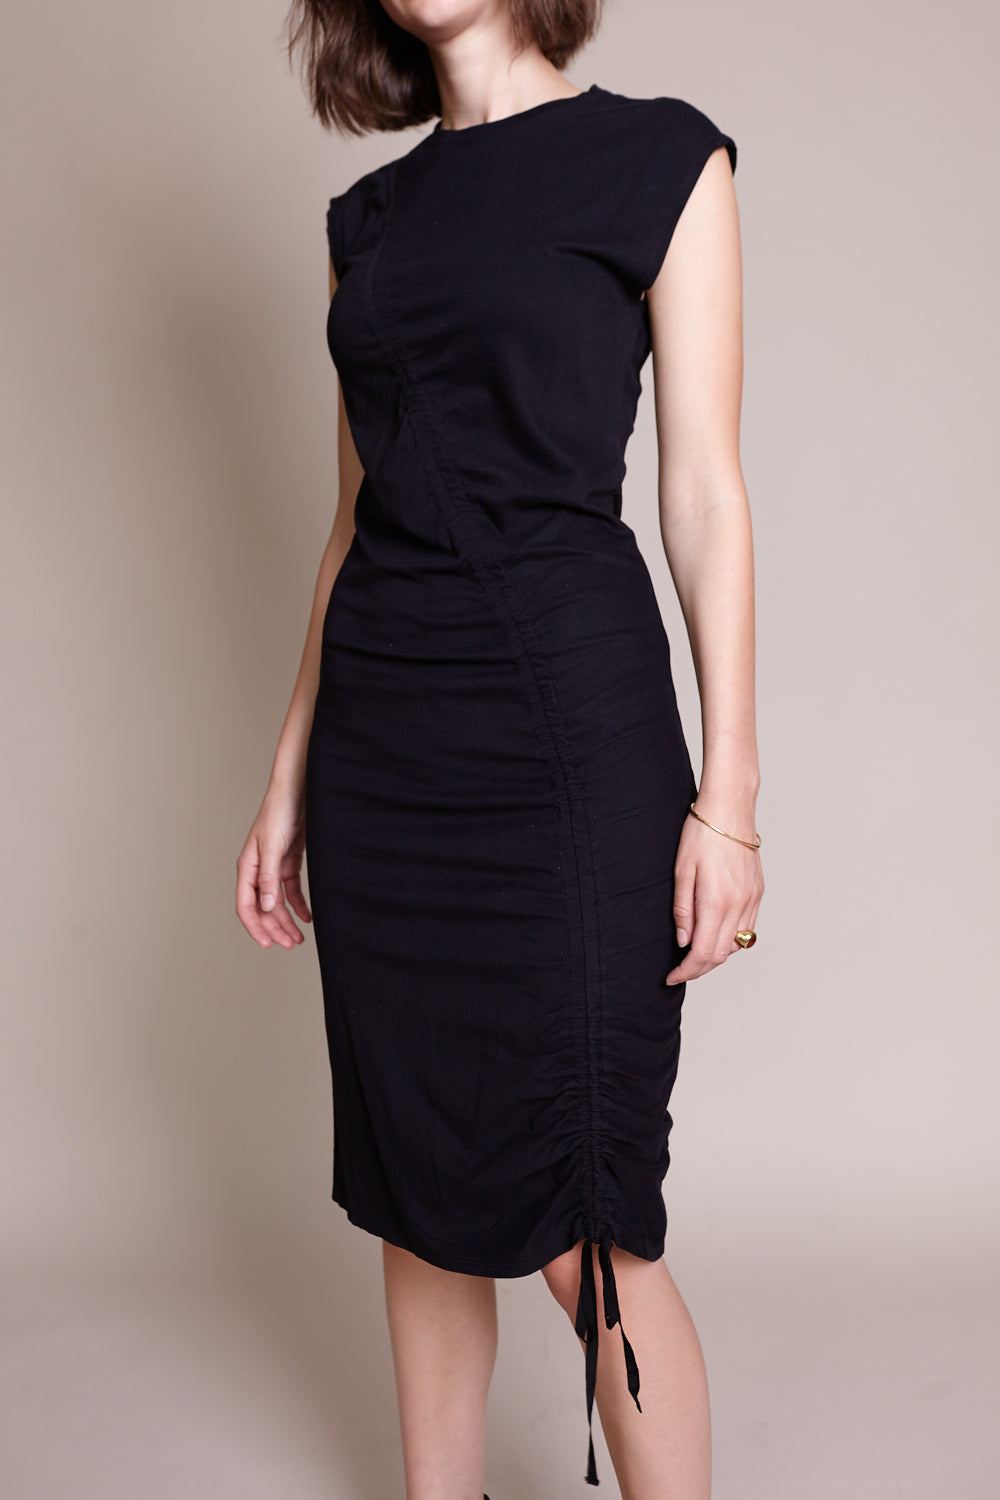 Gathered Tie Midi Dress in Black